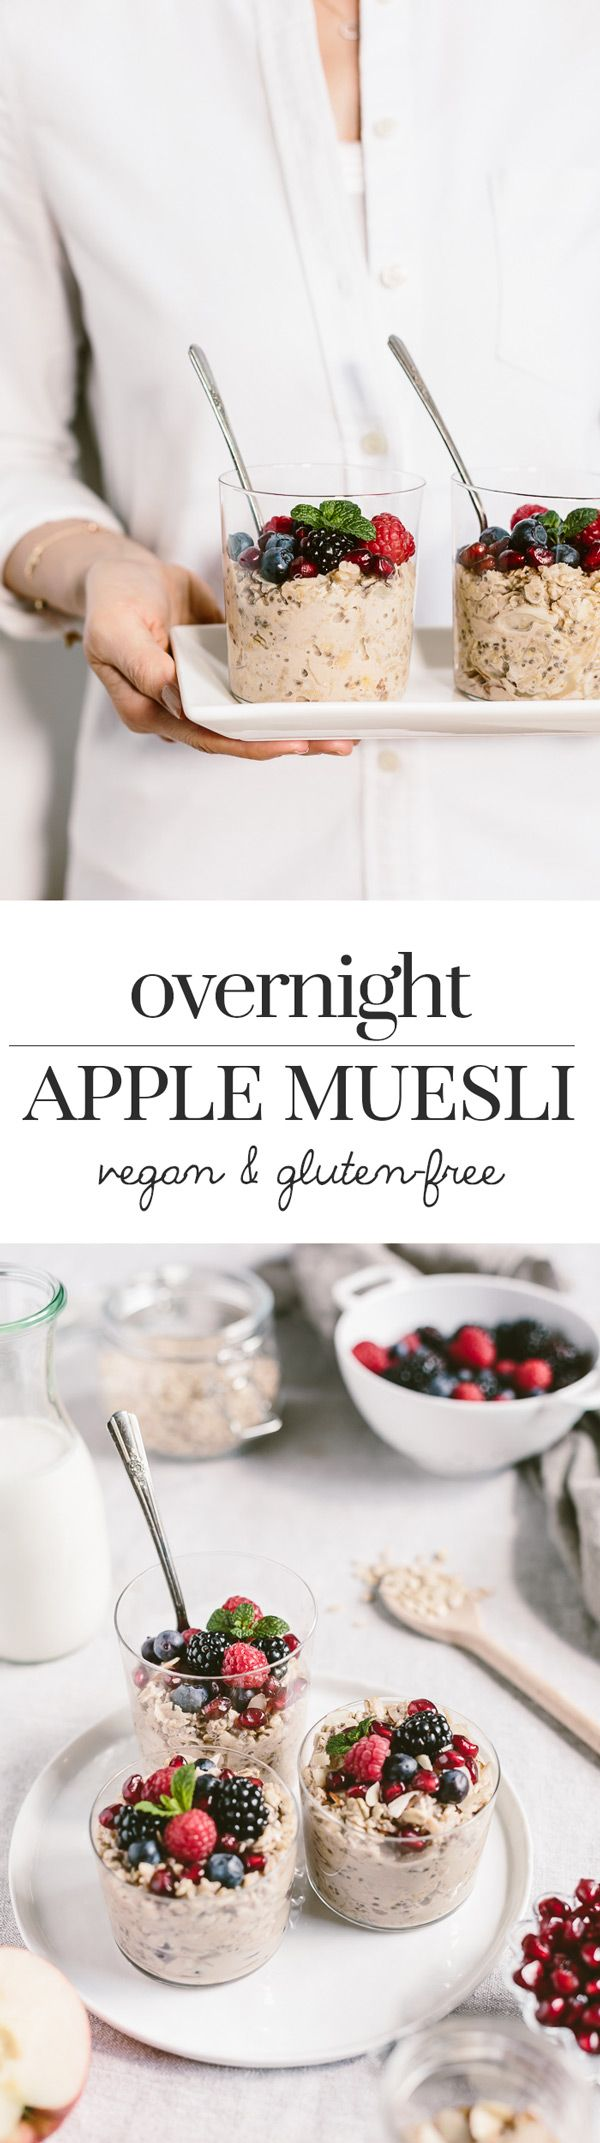 Overnight Apple Muesli - A vegan and gluten-free bircher muesli made with mixing shredded apples, almond milk, and almond yogurt. Come and see our new website at bakedcomfortfood.com!